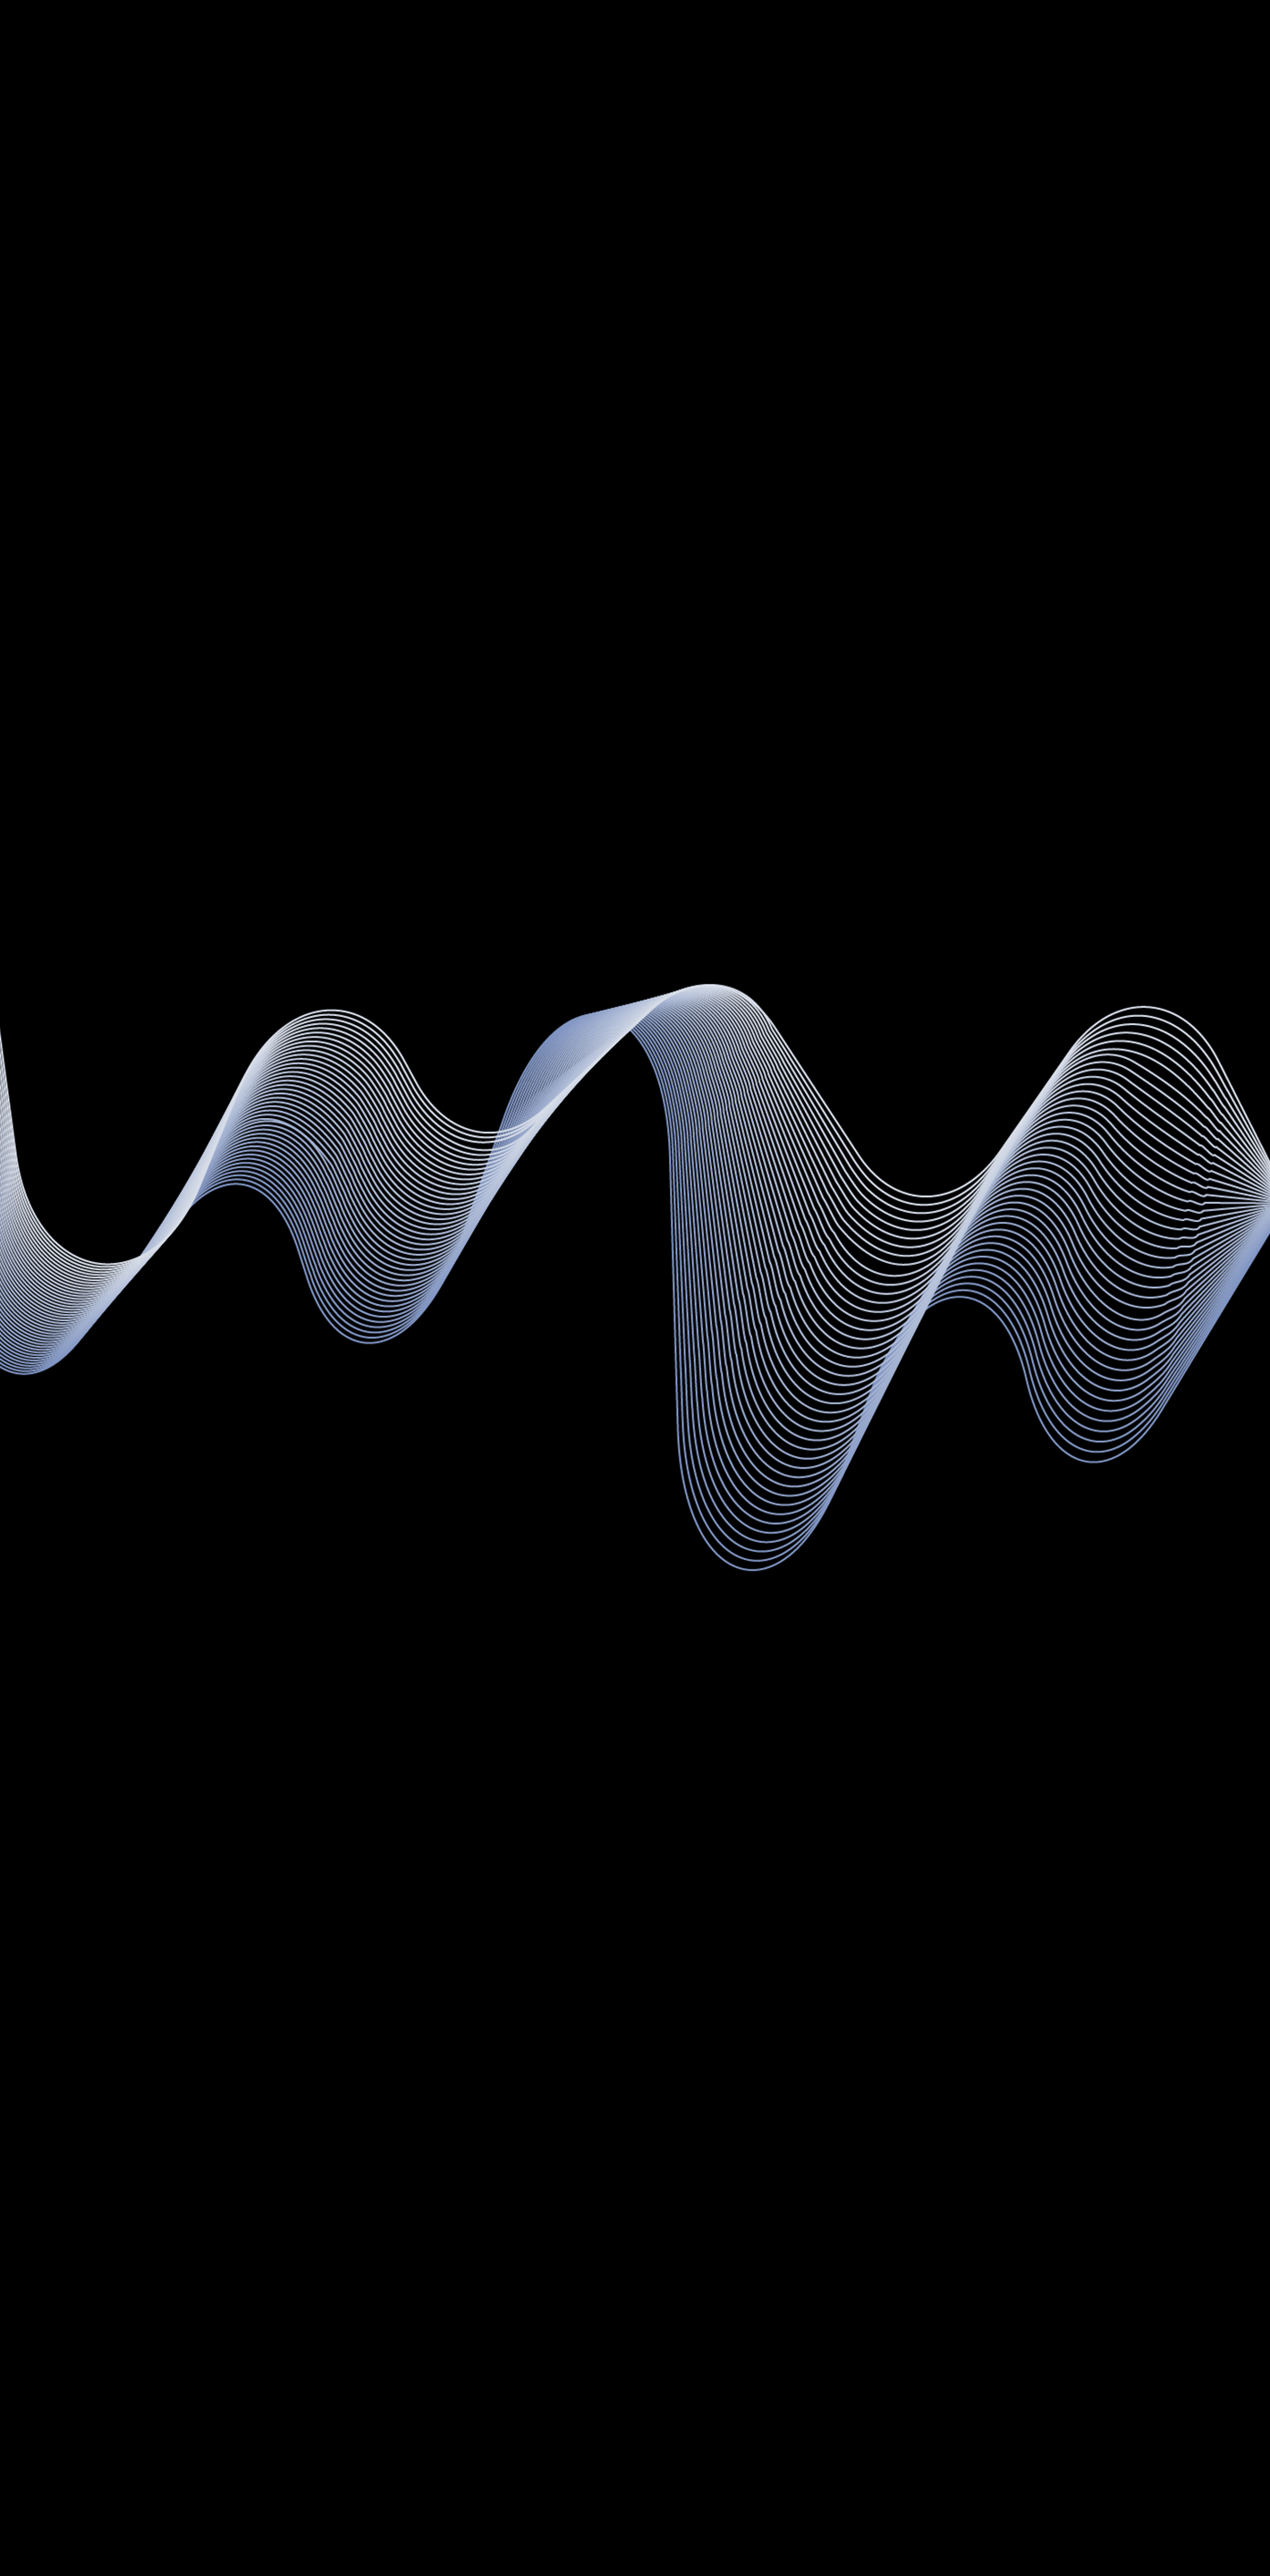 Waveform wallpaper sreeragag7 iDownloadBlog 4